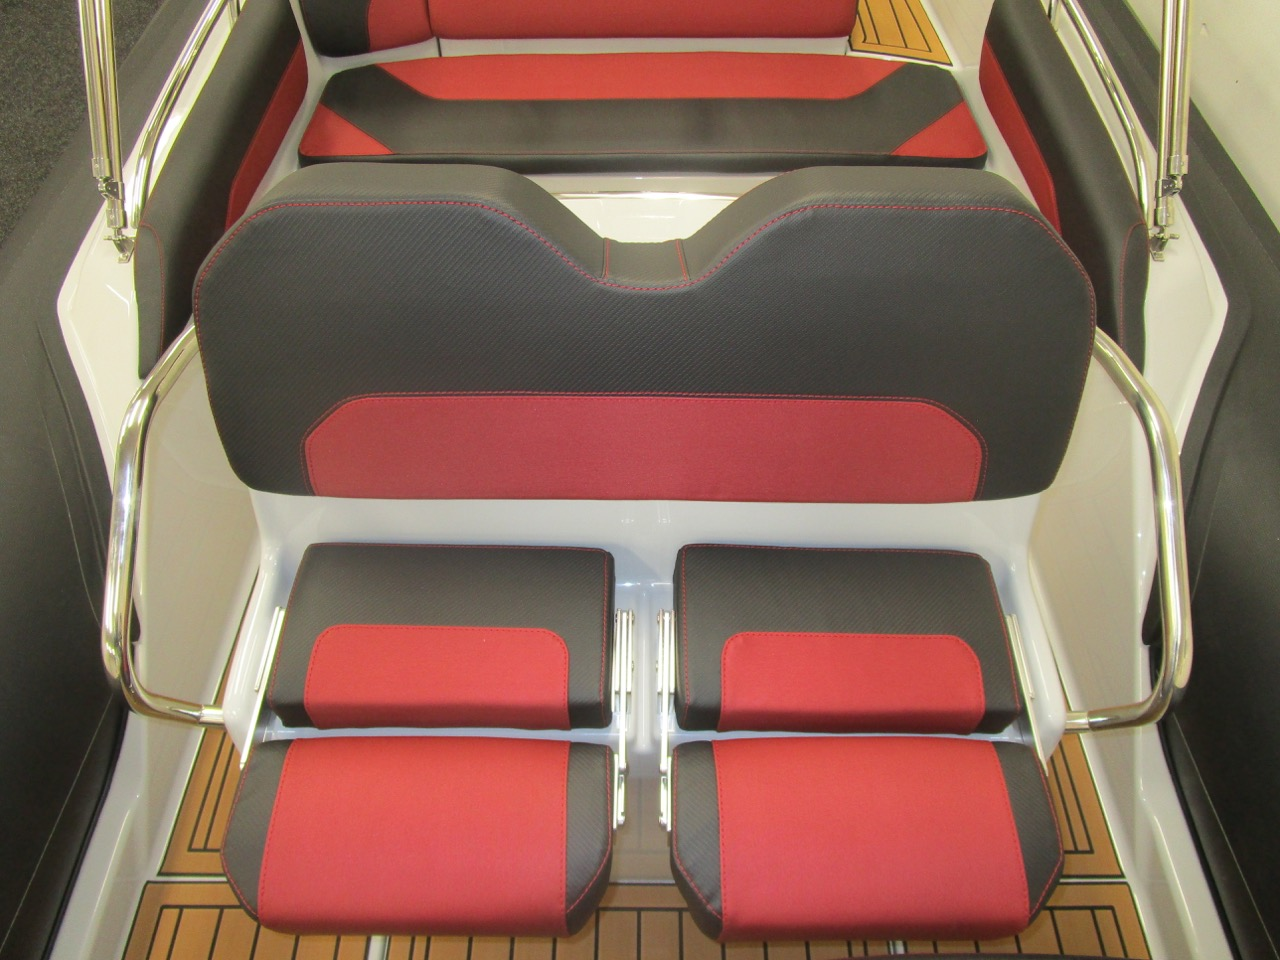 GRAND G750 RIB helm seats extended